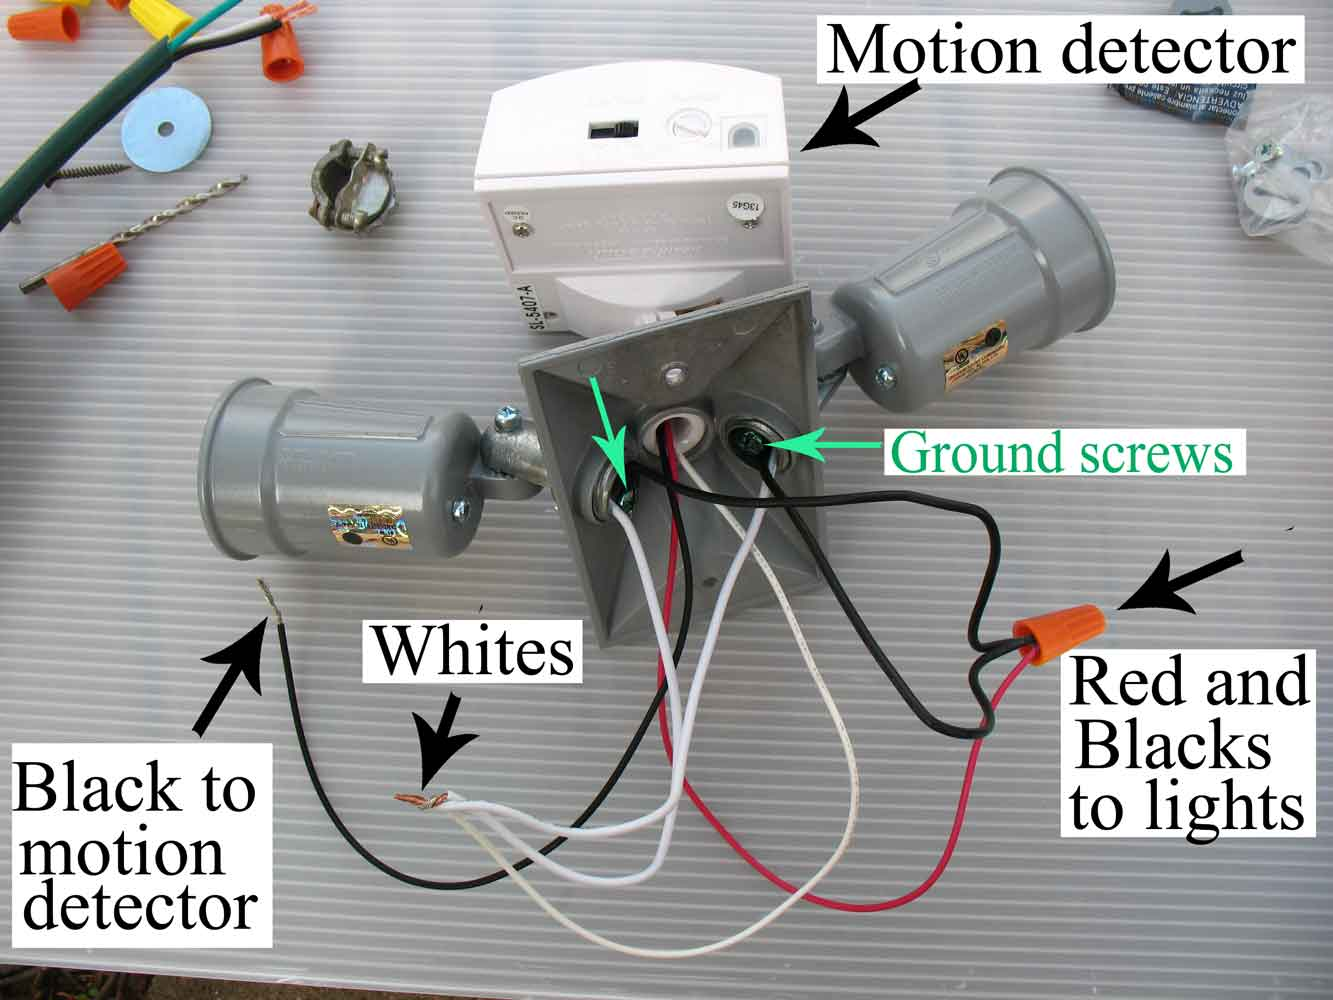 Motion Sensor Flood Light Wiring Diagram Binary Counter Circuit Tradeoficcom How To Wire Occupancy Sensors Rh Waterheatertimer Org